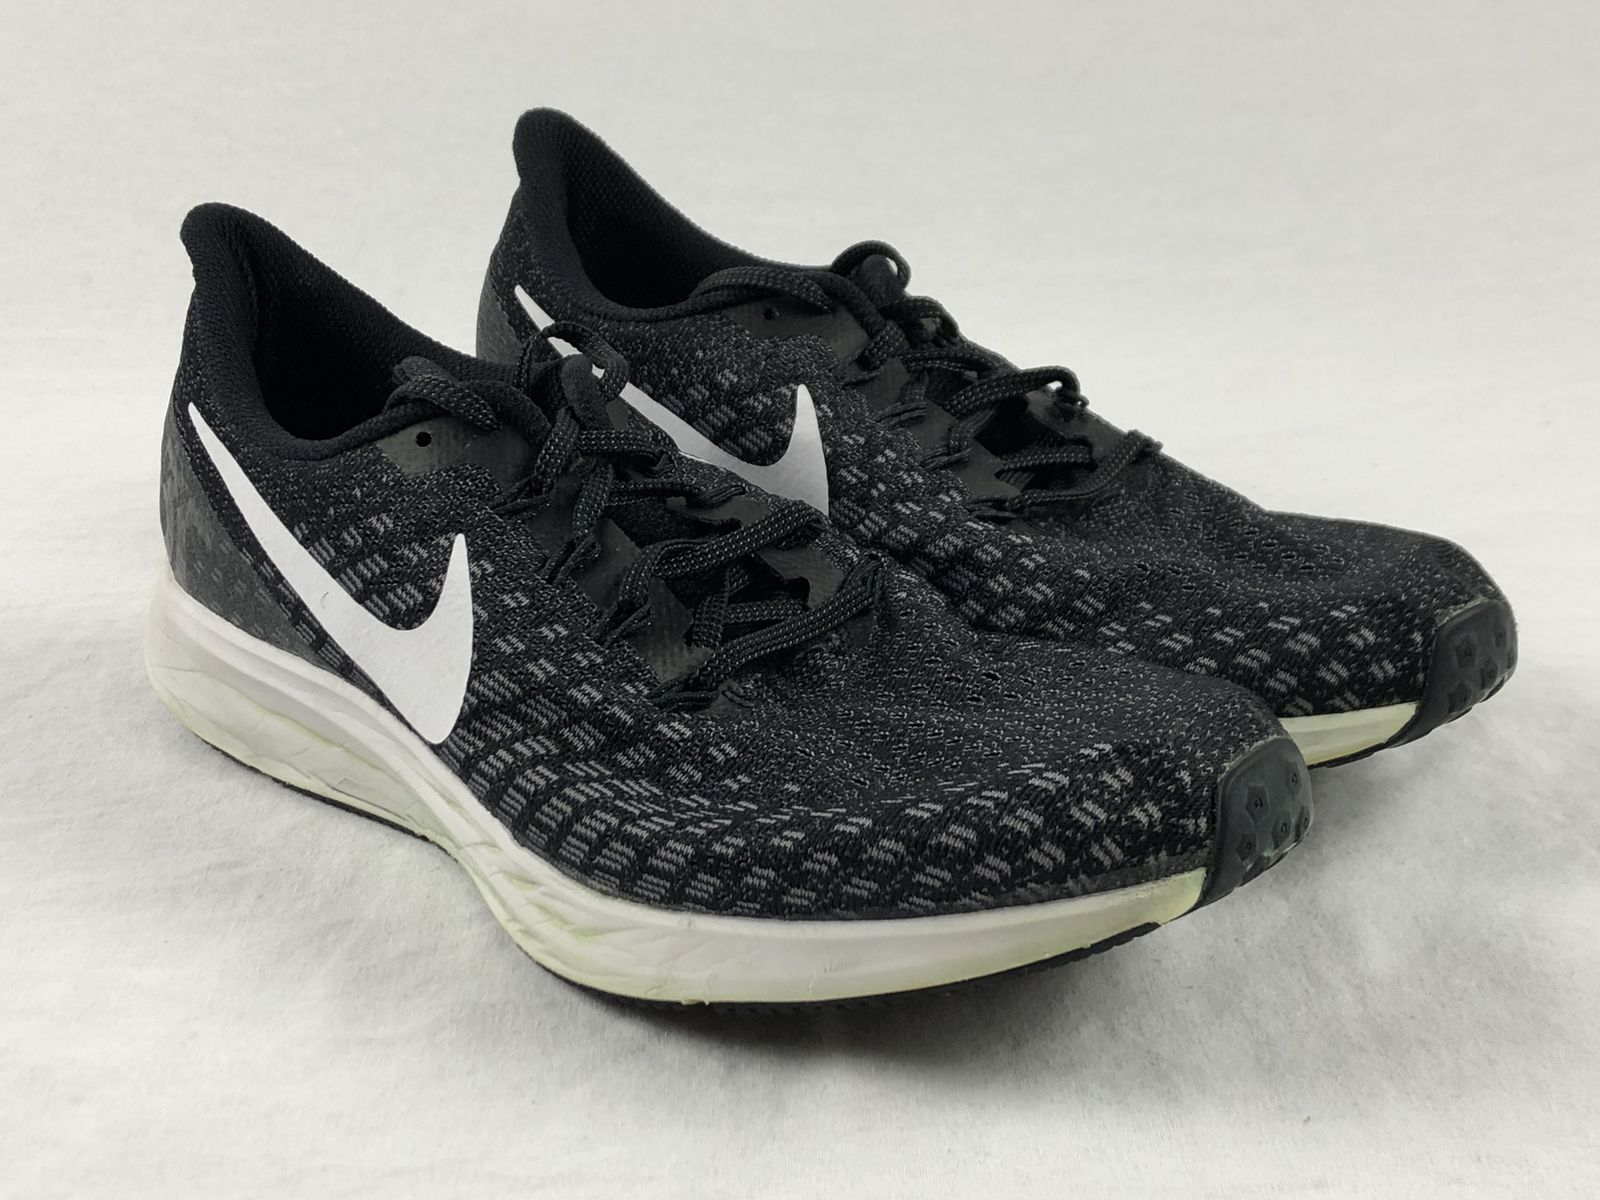 watch b84f7 c966a Details about Nike Zoom Pegasus 33 - Black Running, Cross Training (Men's  11.5) - Used